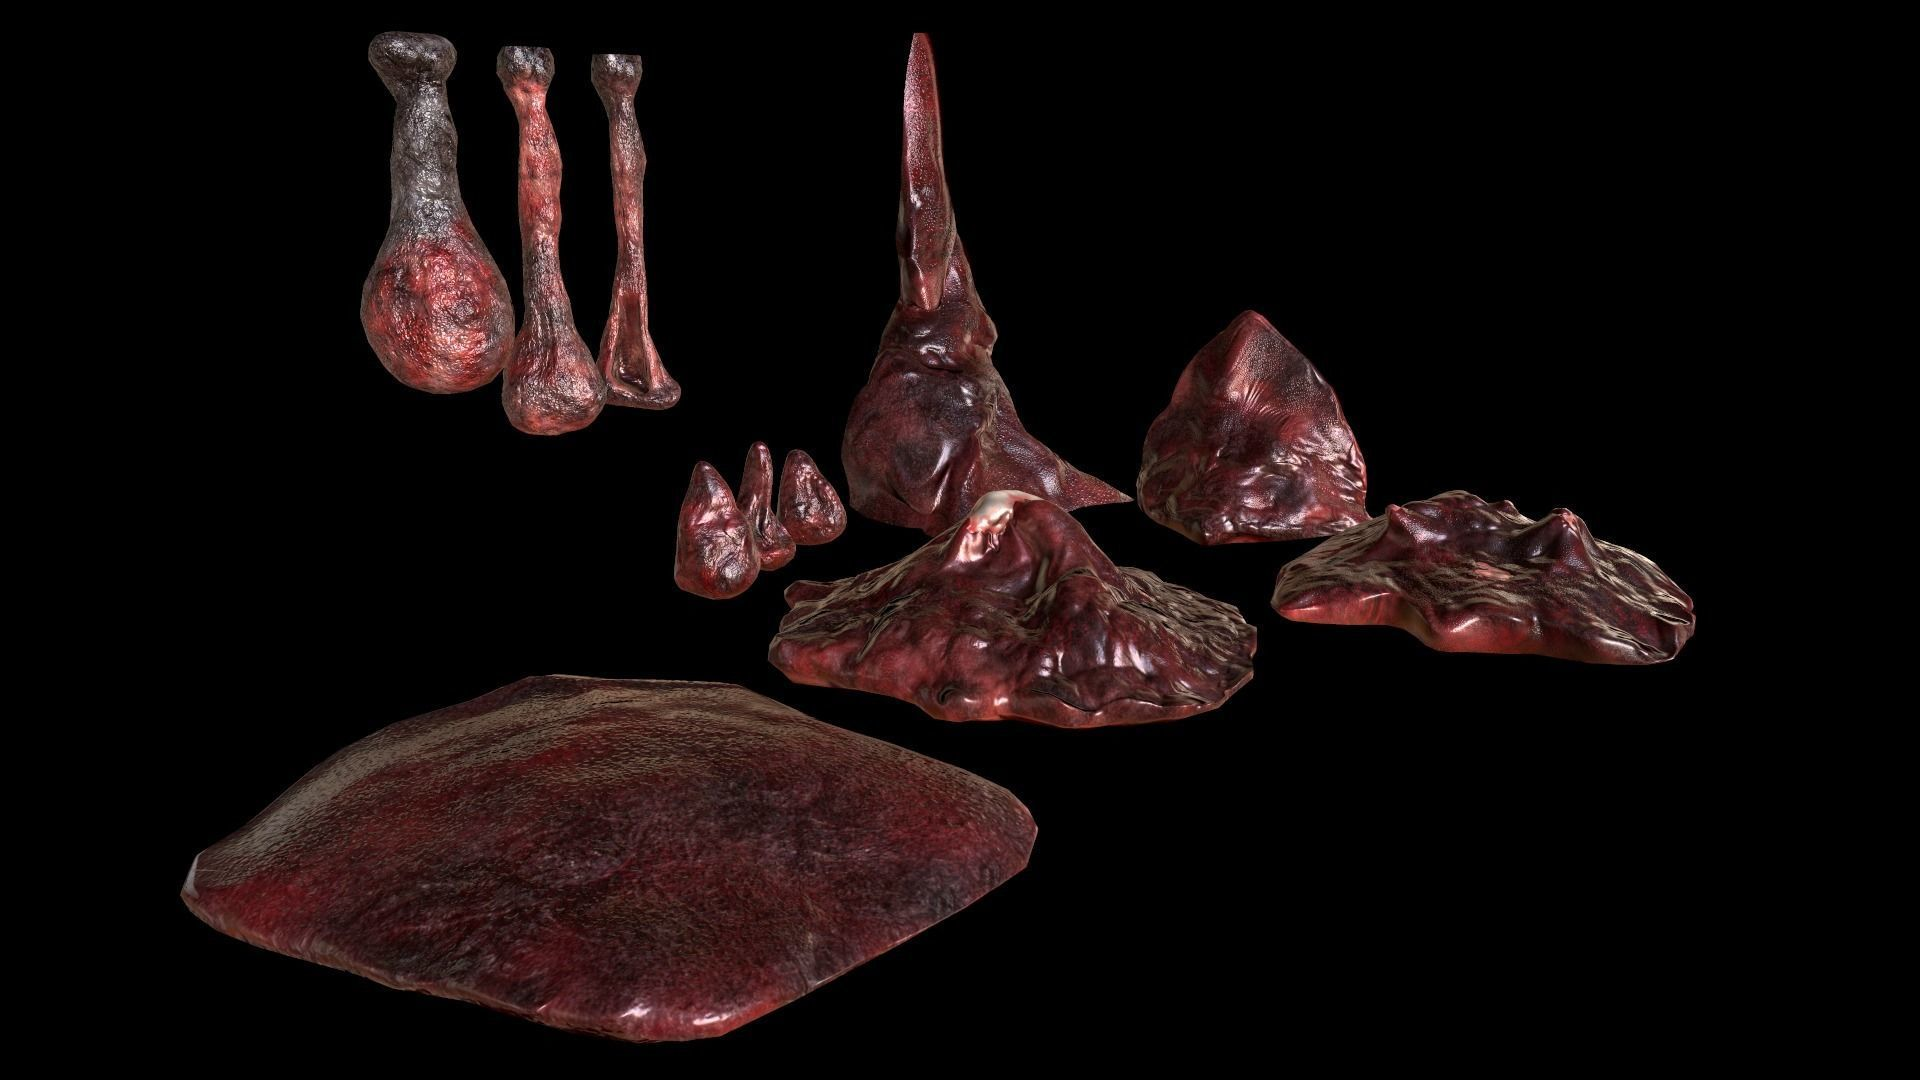 Horror Prop - Cocoon stench Animated